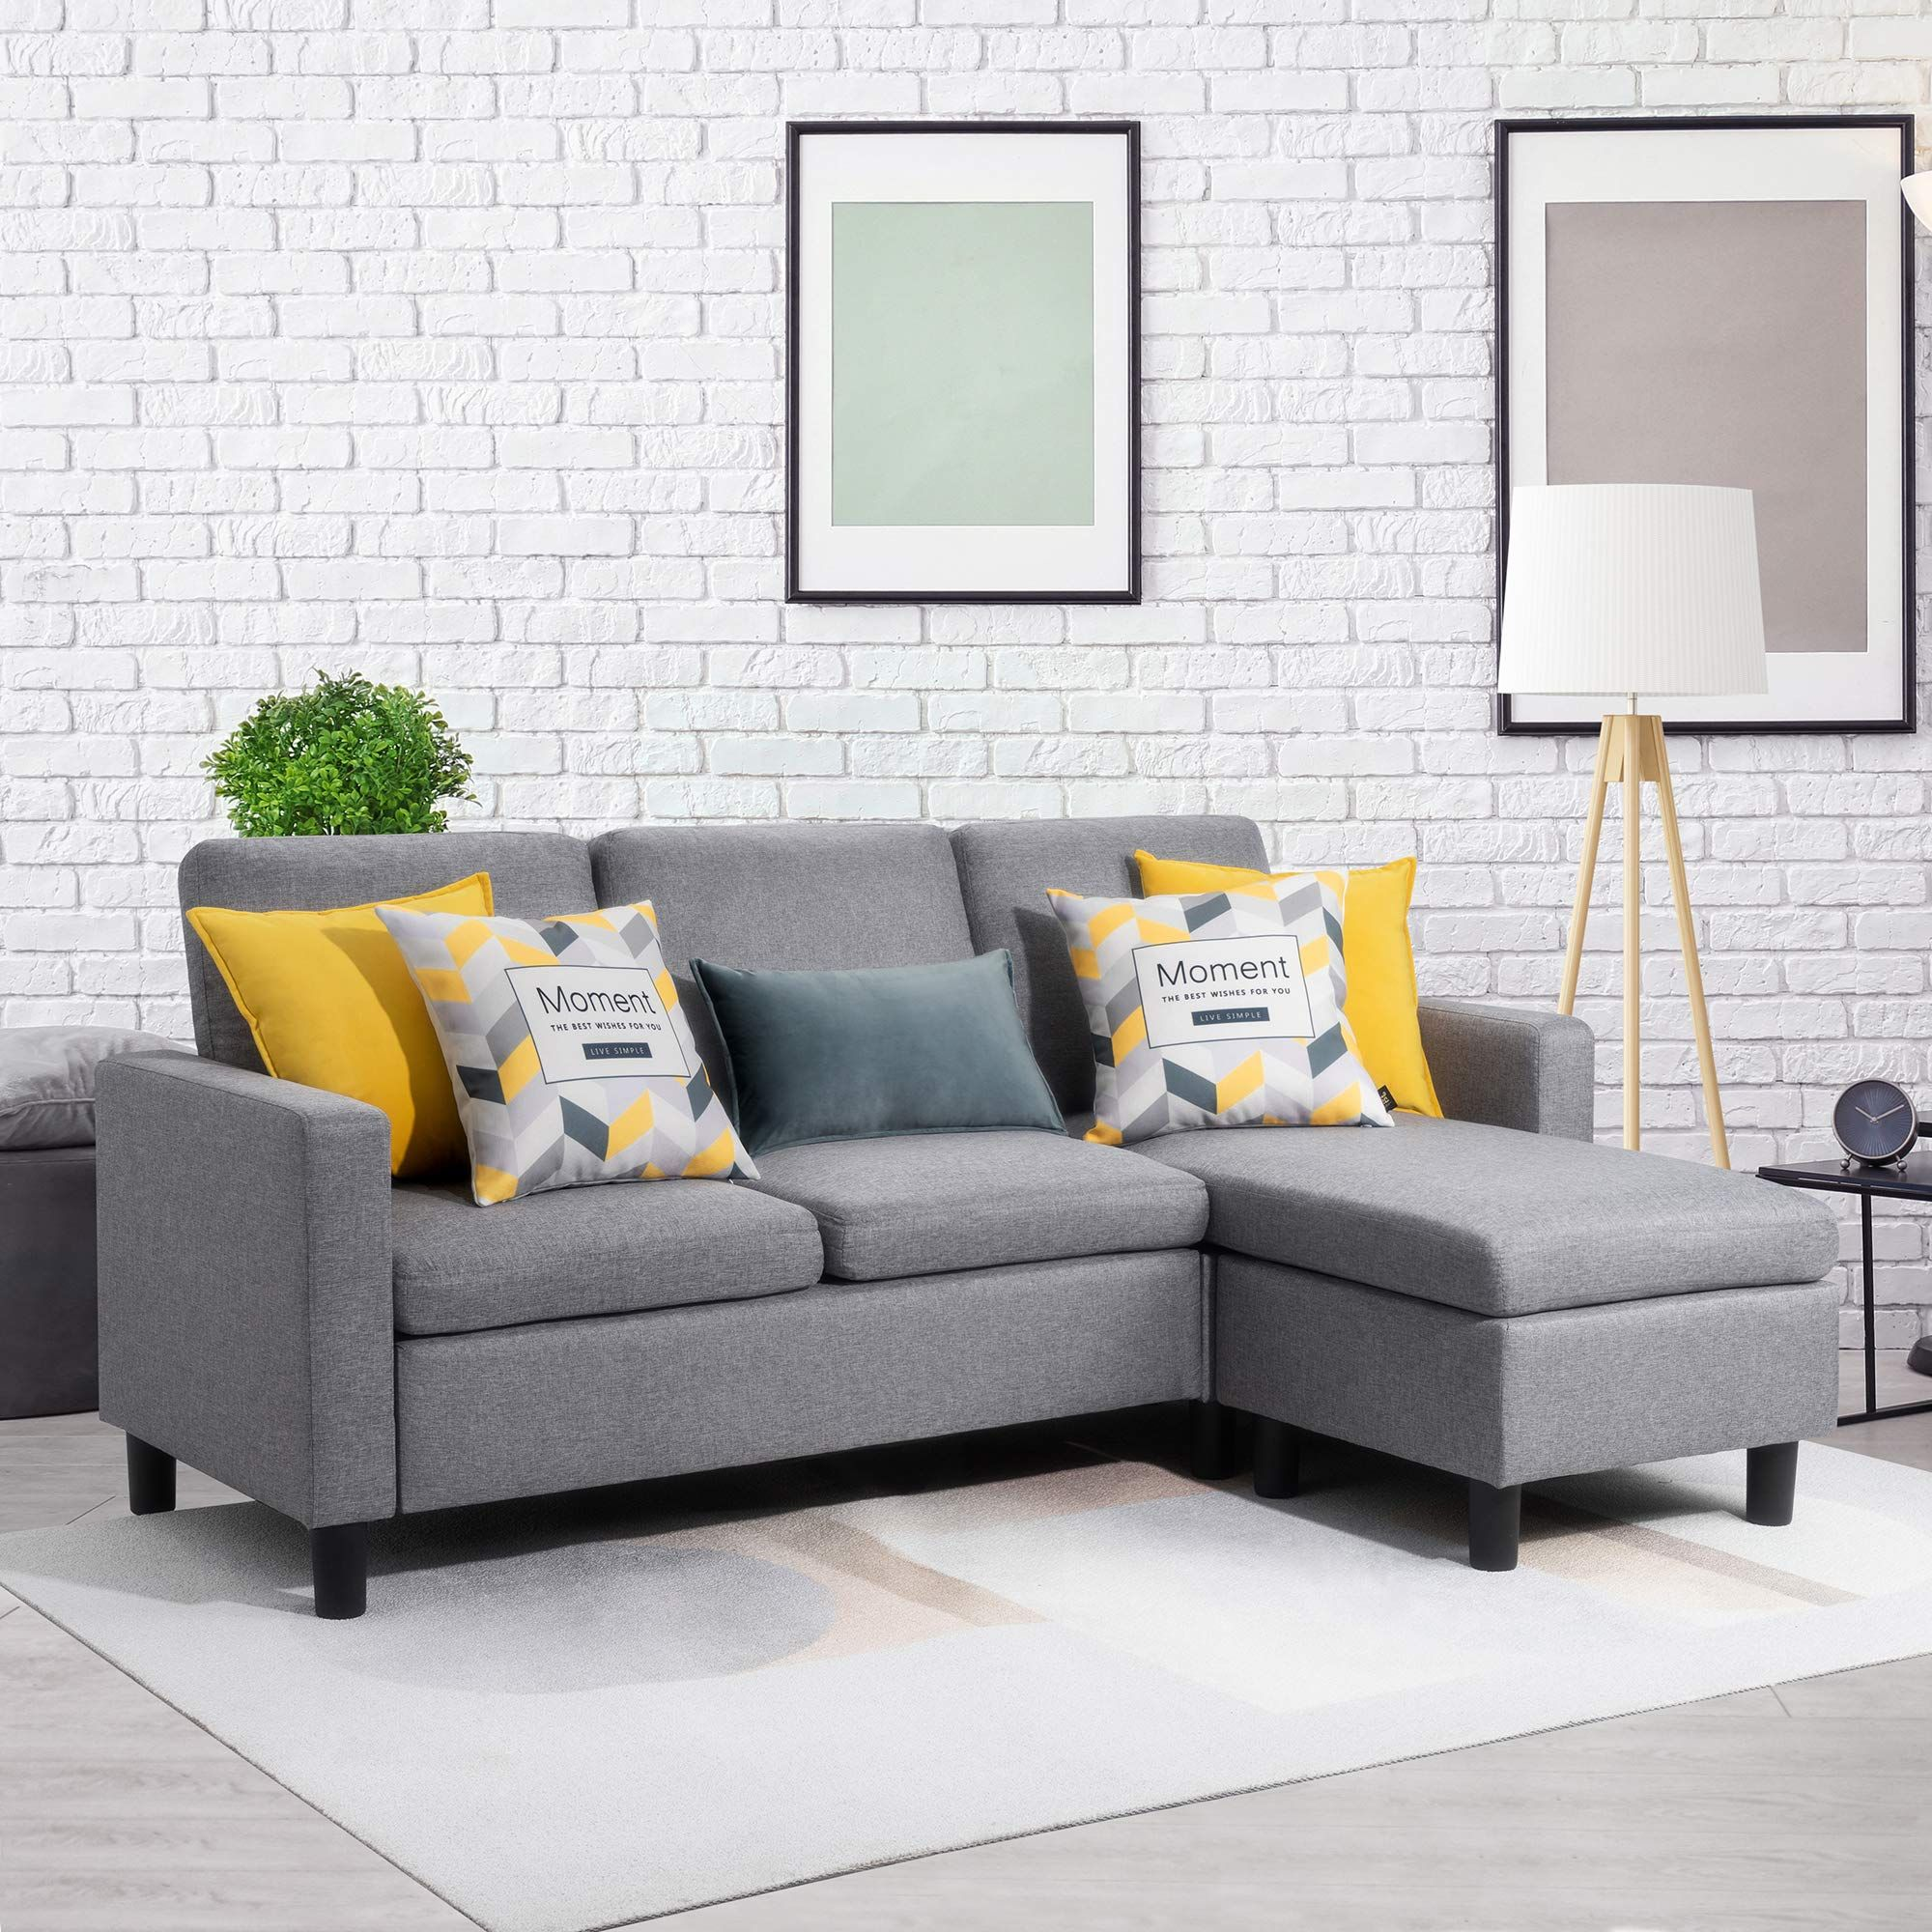 Walsunny Convertible Sectional Sofa Couch With Reversible Chaise L Shaped Couch With Modern Linen Fabric F In 2020 Modern Sofa Sectional L Shaped Couch Sectional Sofa